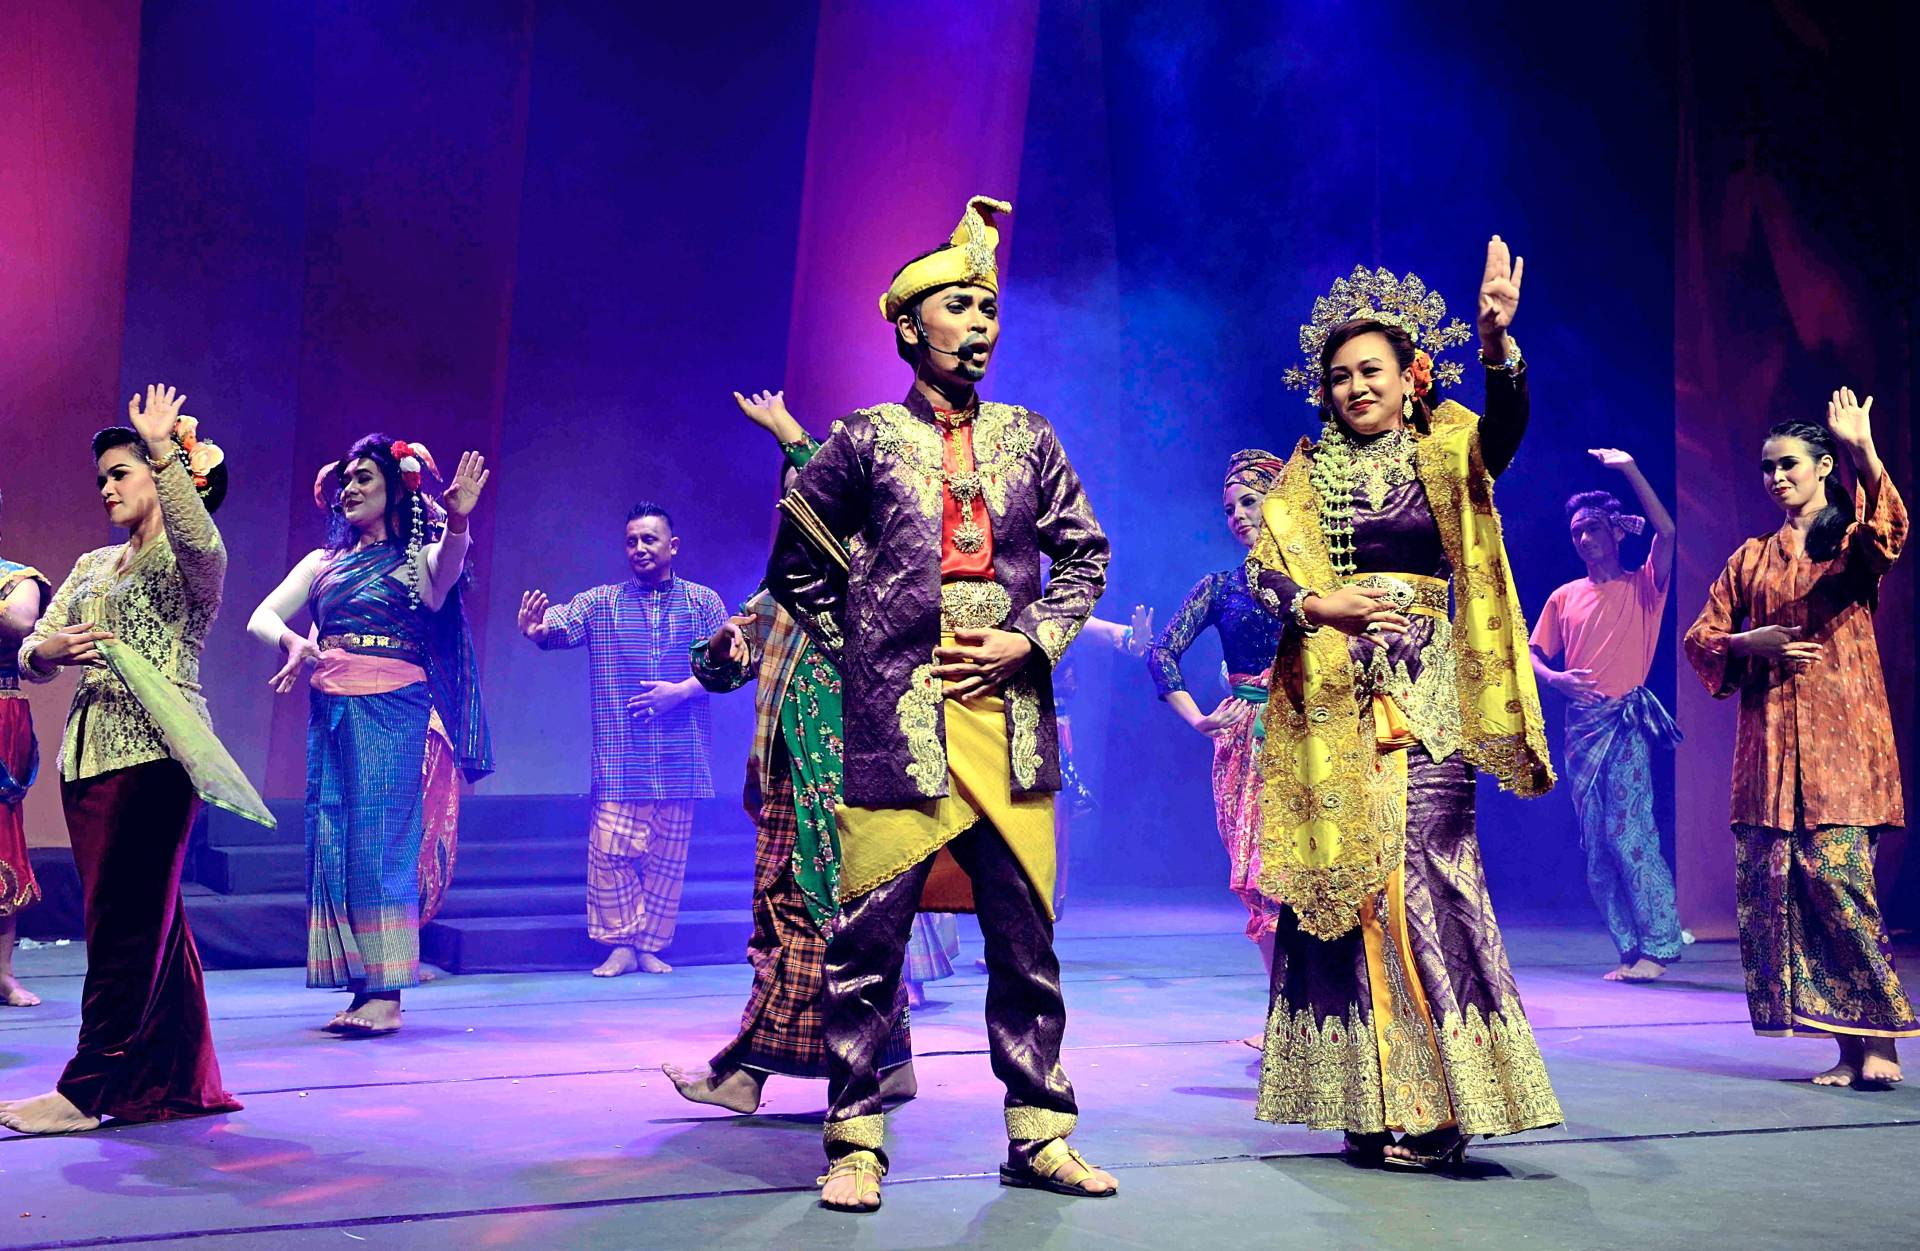 Keeping traditional theatre alive